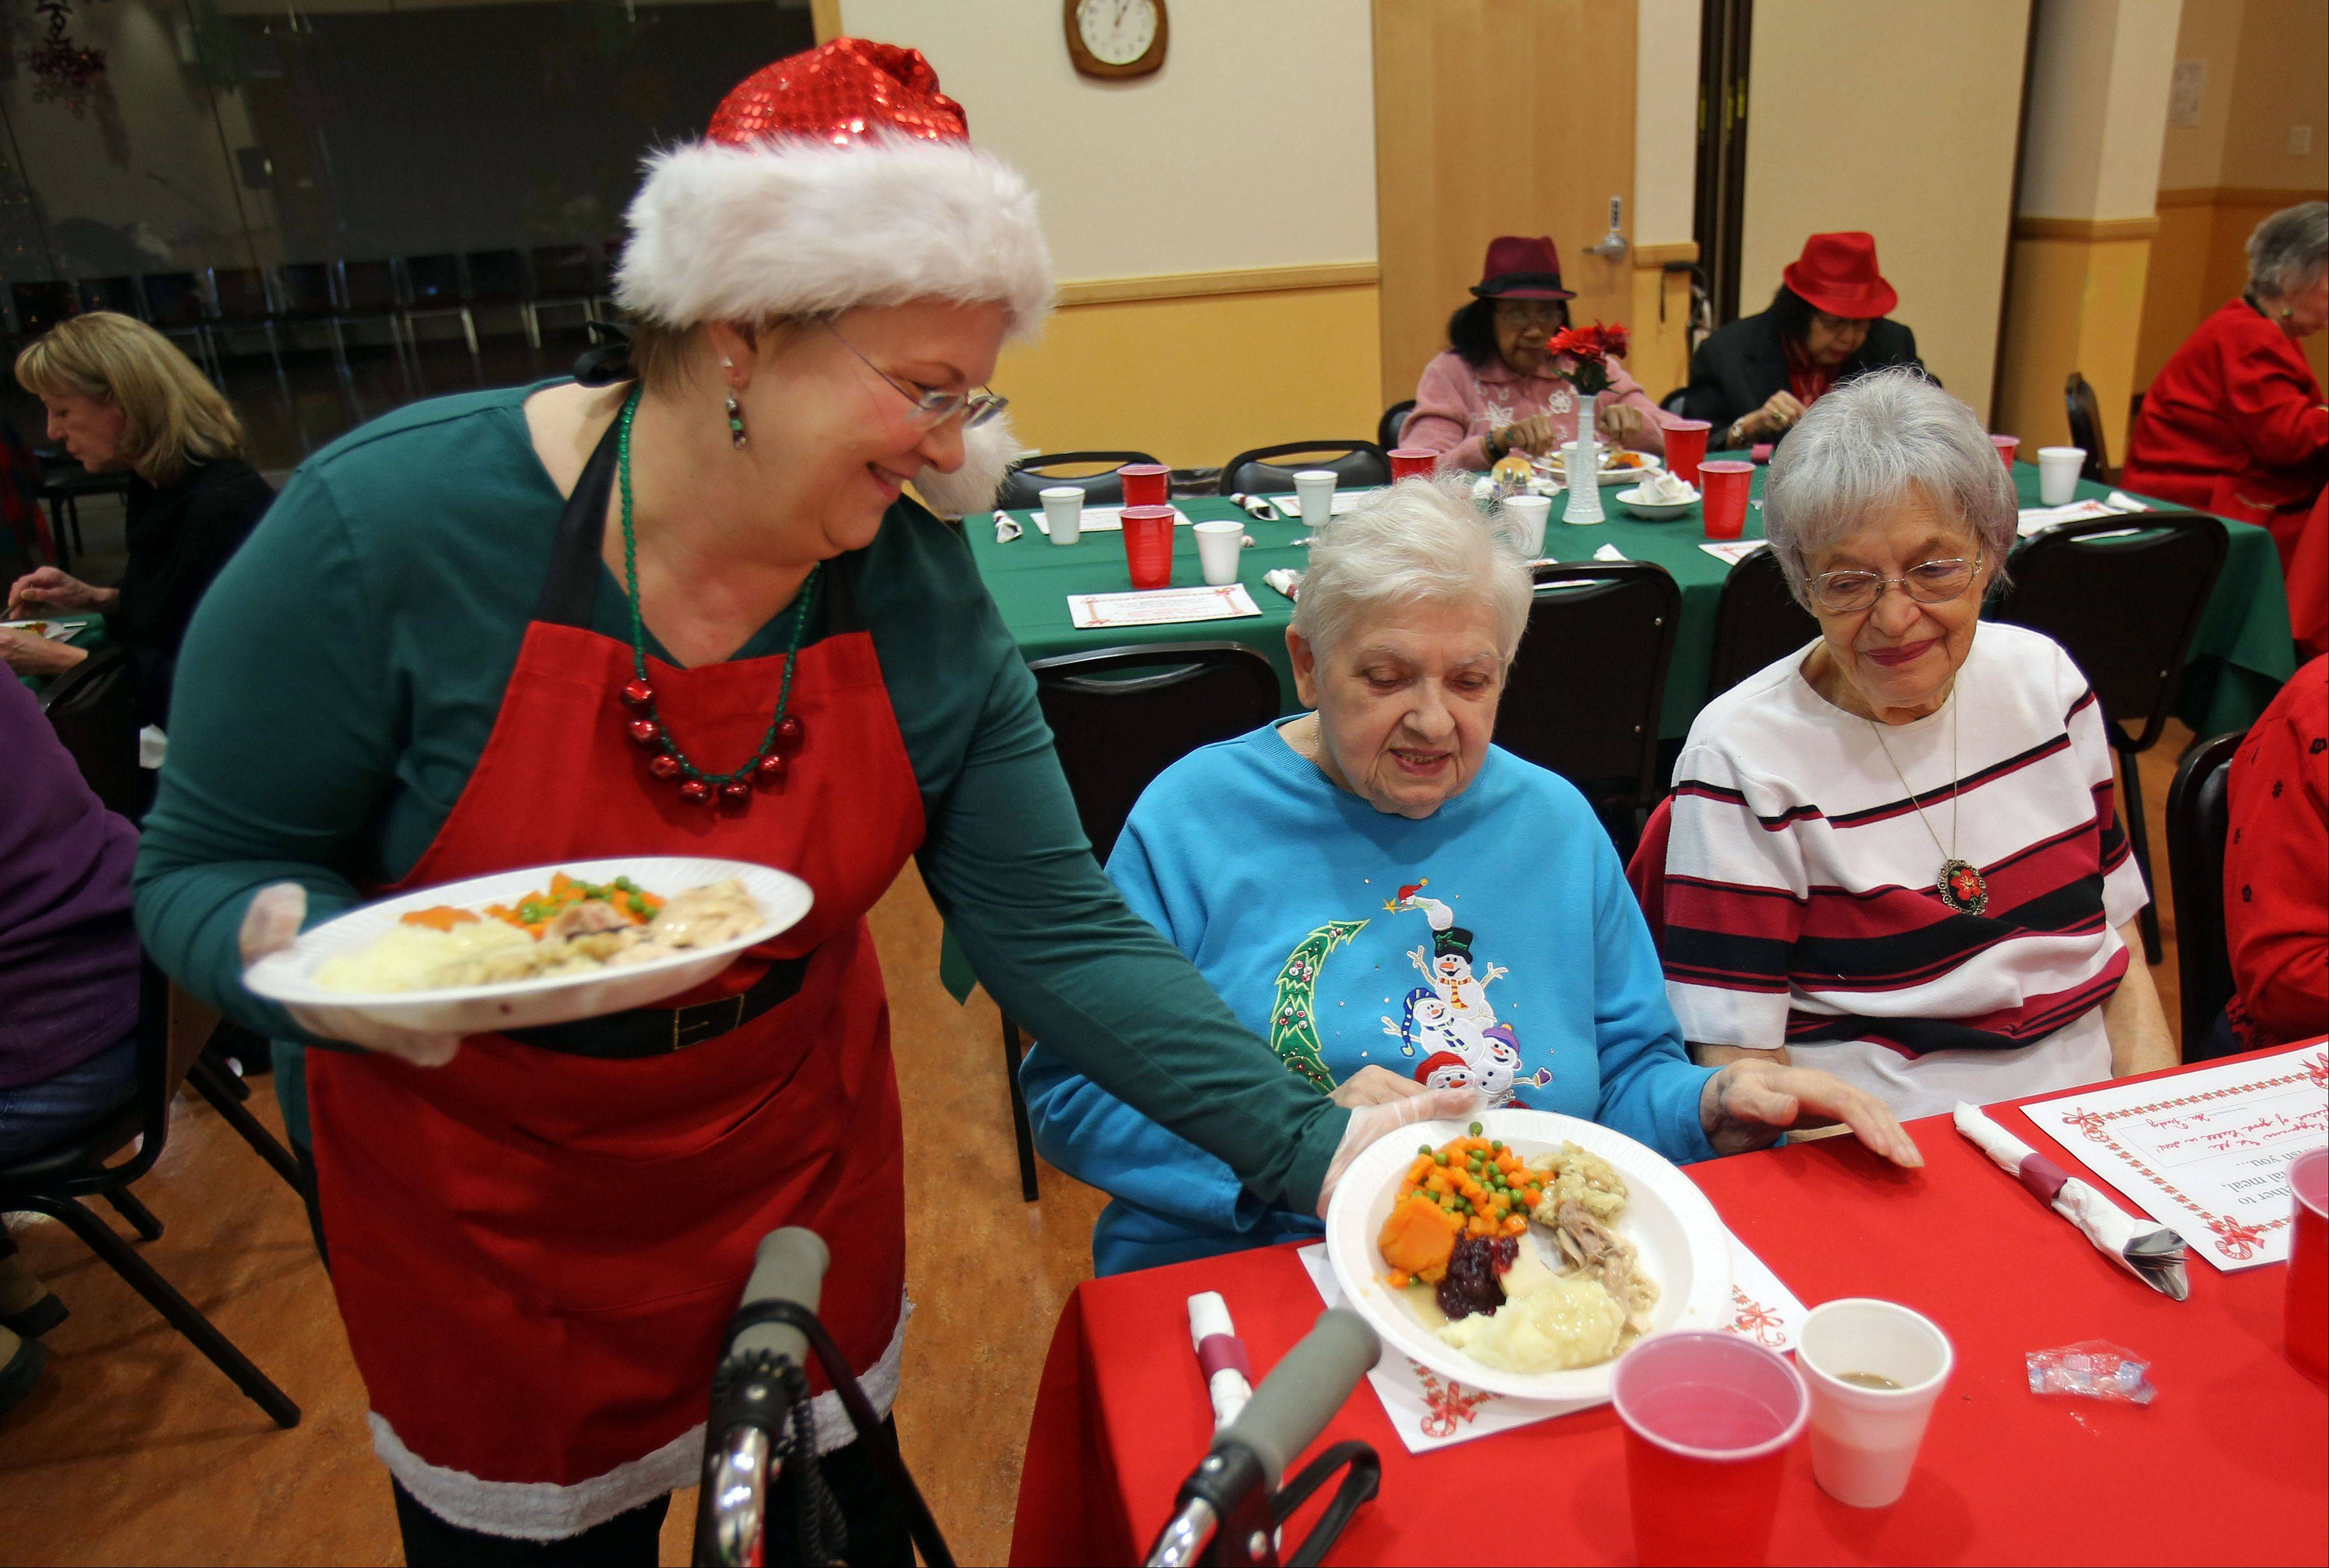 Des Plaines City Clerk Gloria Ludwig, left, serves a plate of food to Marta Androne, of Schaumburg, and Hilda Hoffmann, of Des Plaines, as about 100 seniors were treated to a Christmas dinner at the Frisbie Senior Center in Des Plaines Wednesday.